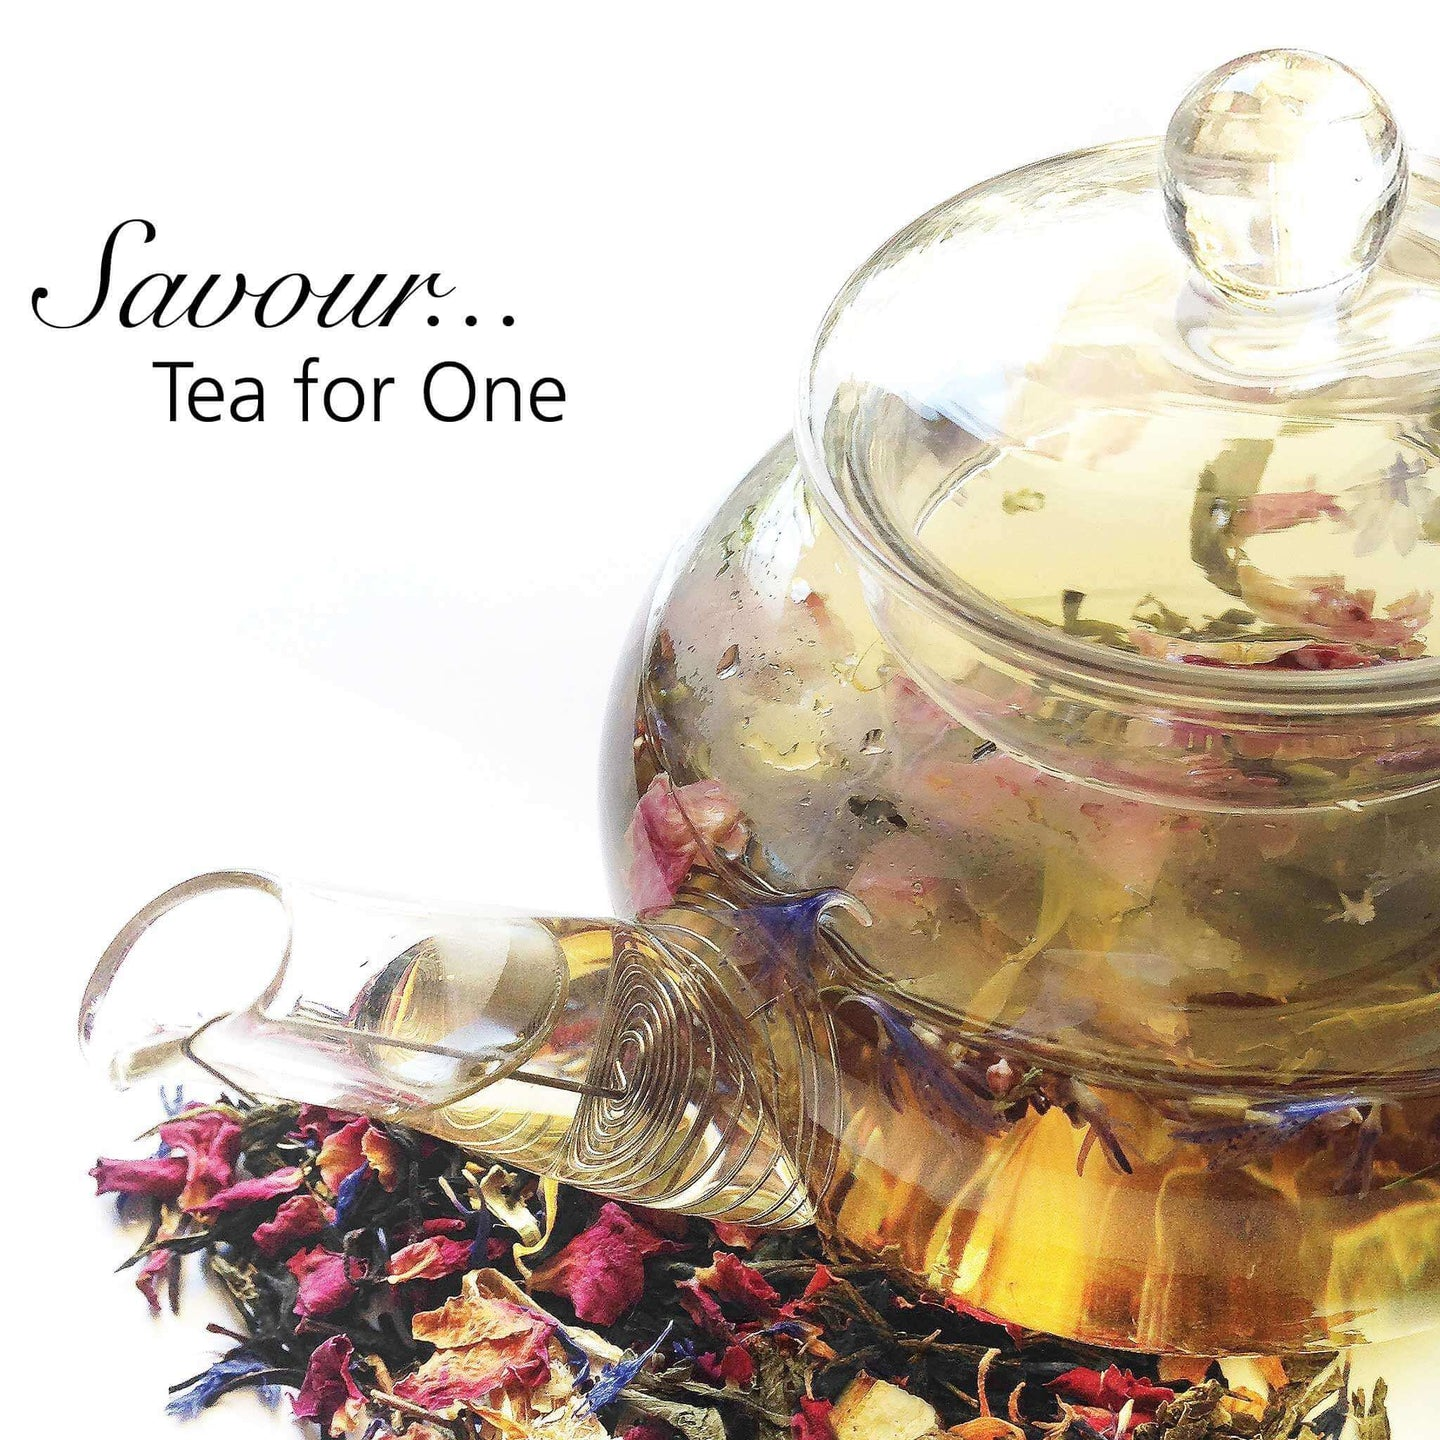 Tea for One Teapot 350ml - Buy from Teas.com.au